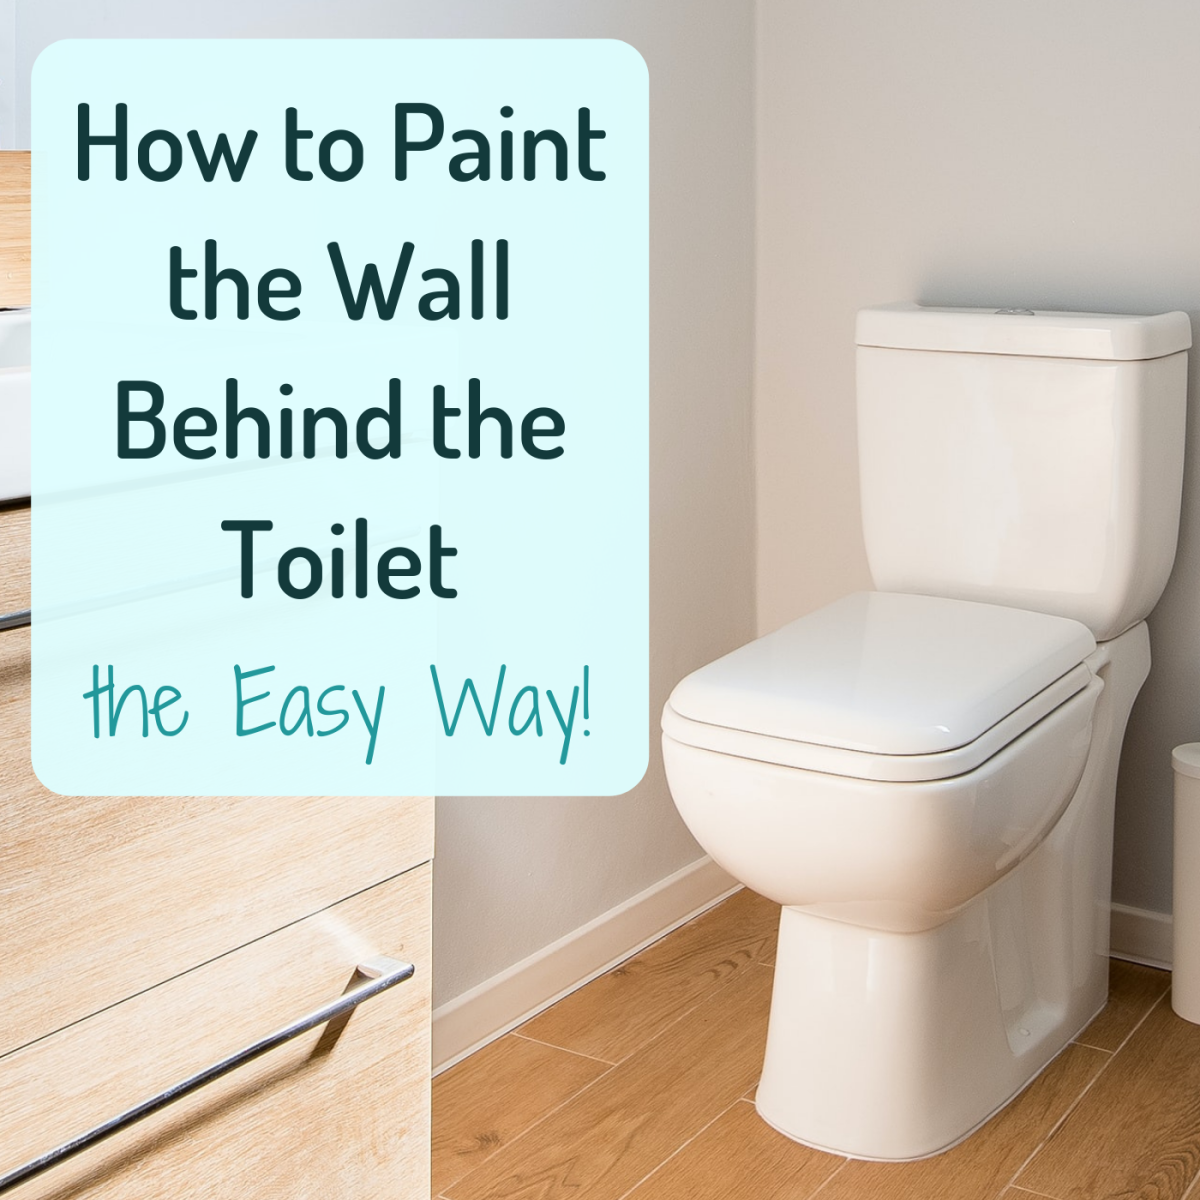 Need to paint that hard-to-reach wall behind your toilet tank? Learn how to do it the easy way!